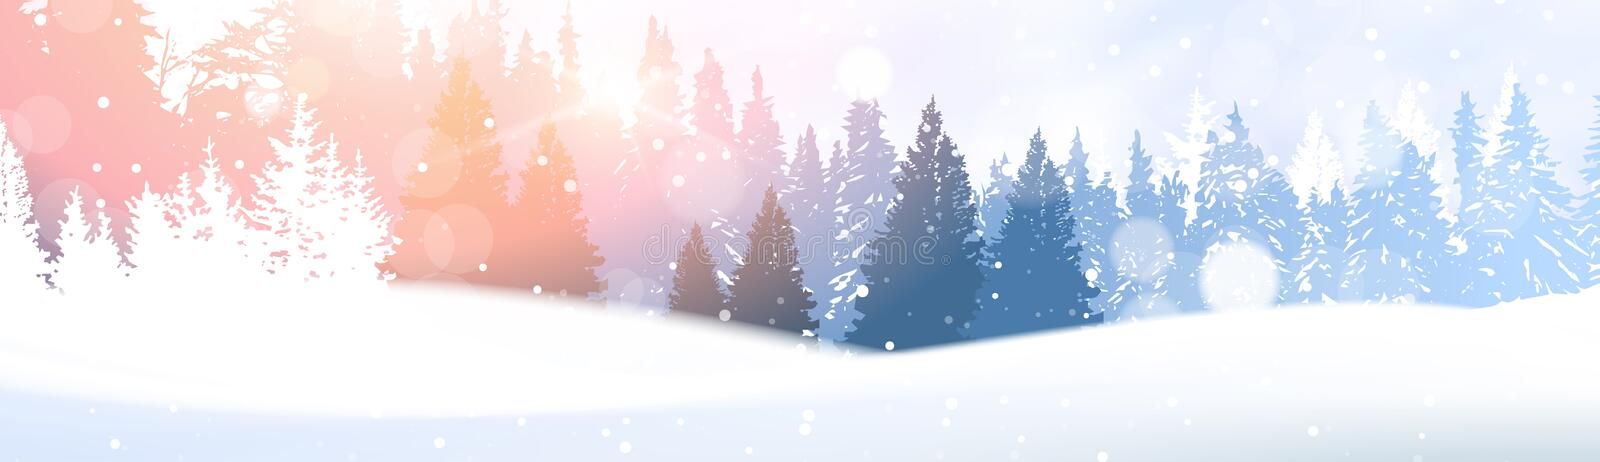 Day In Winter Forest Glowing Snow Under Sunshine Woodland Landscape White Snowy Pine Tree Woods Background. Flat Vector Illustration royalty free illustration